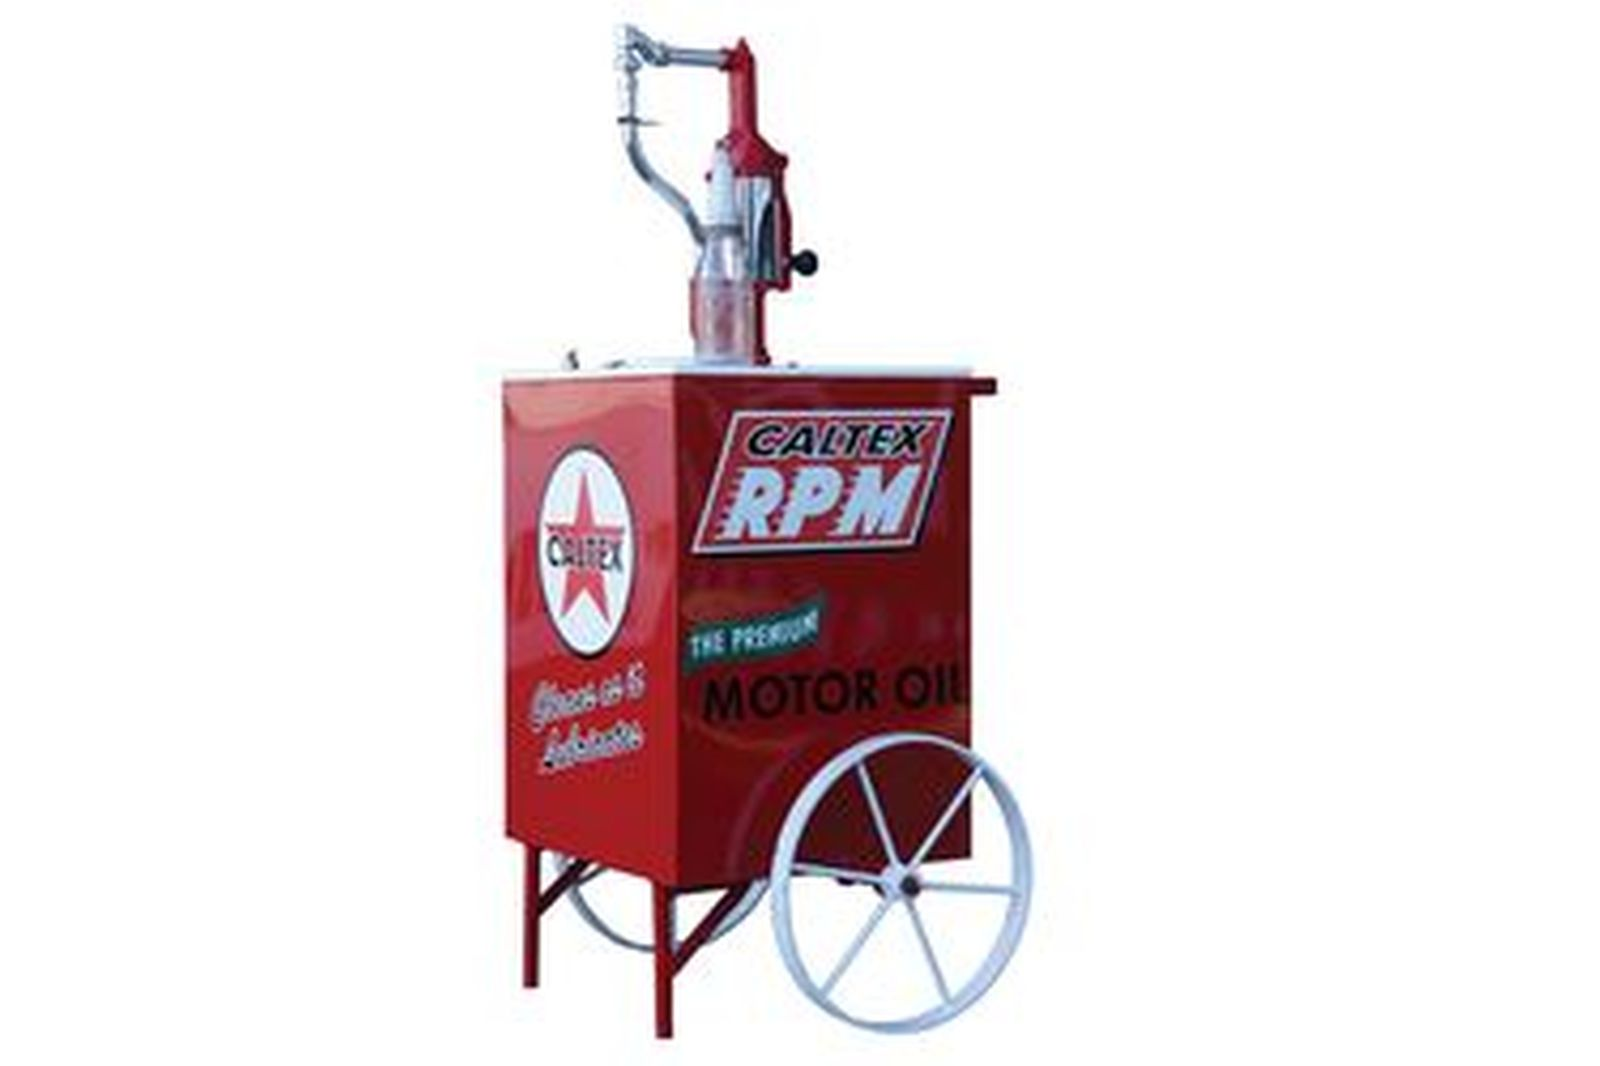 Sold: Tall Boy - Mobile Oil Tall Boy in Caltex Livery with pump and